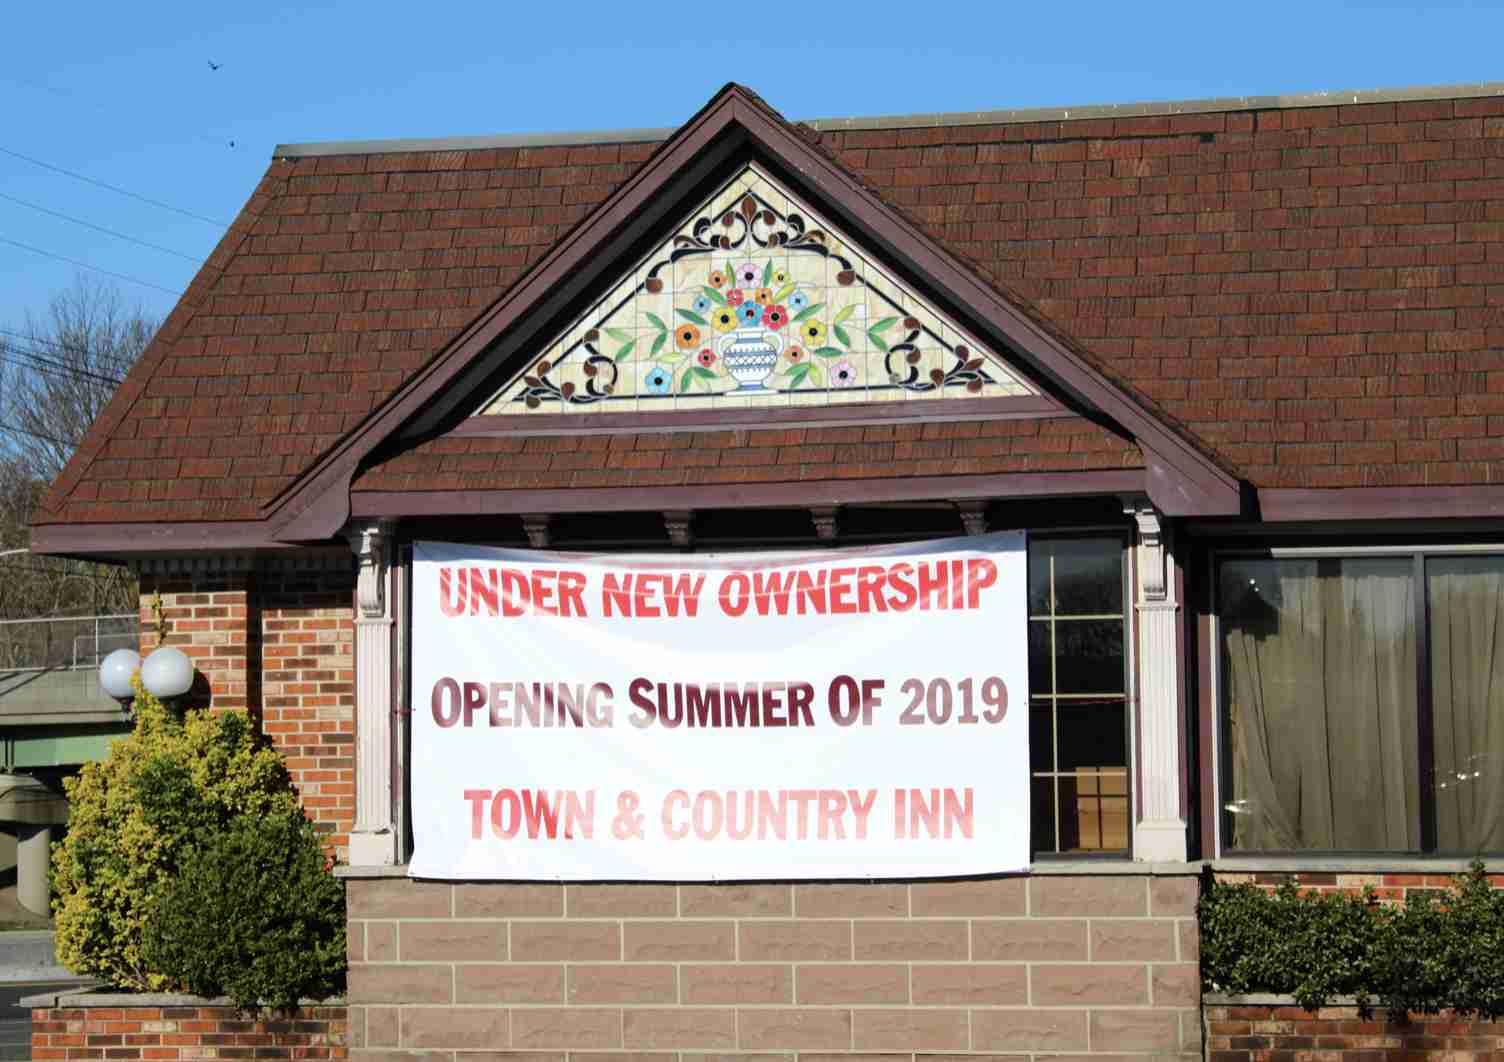 Town & country inn 2019 new opening